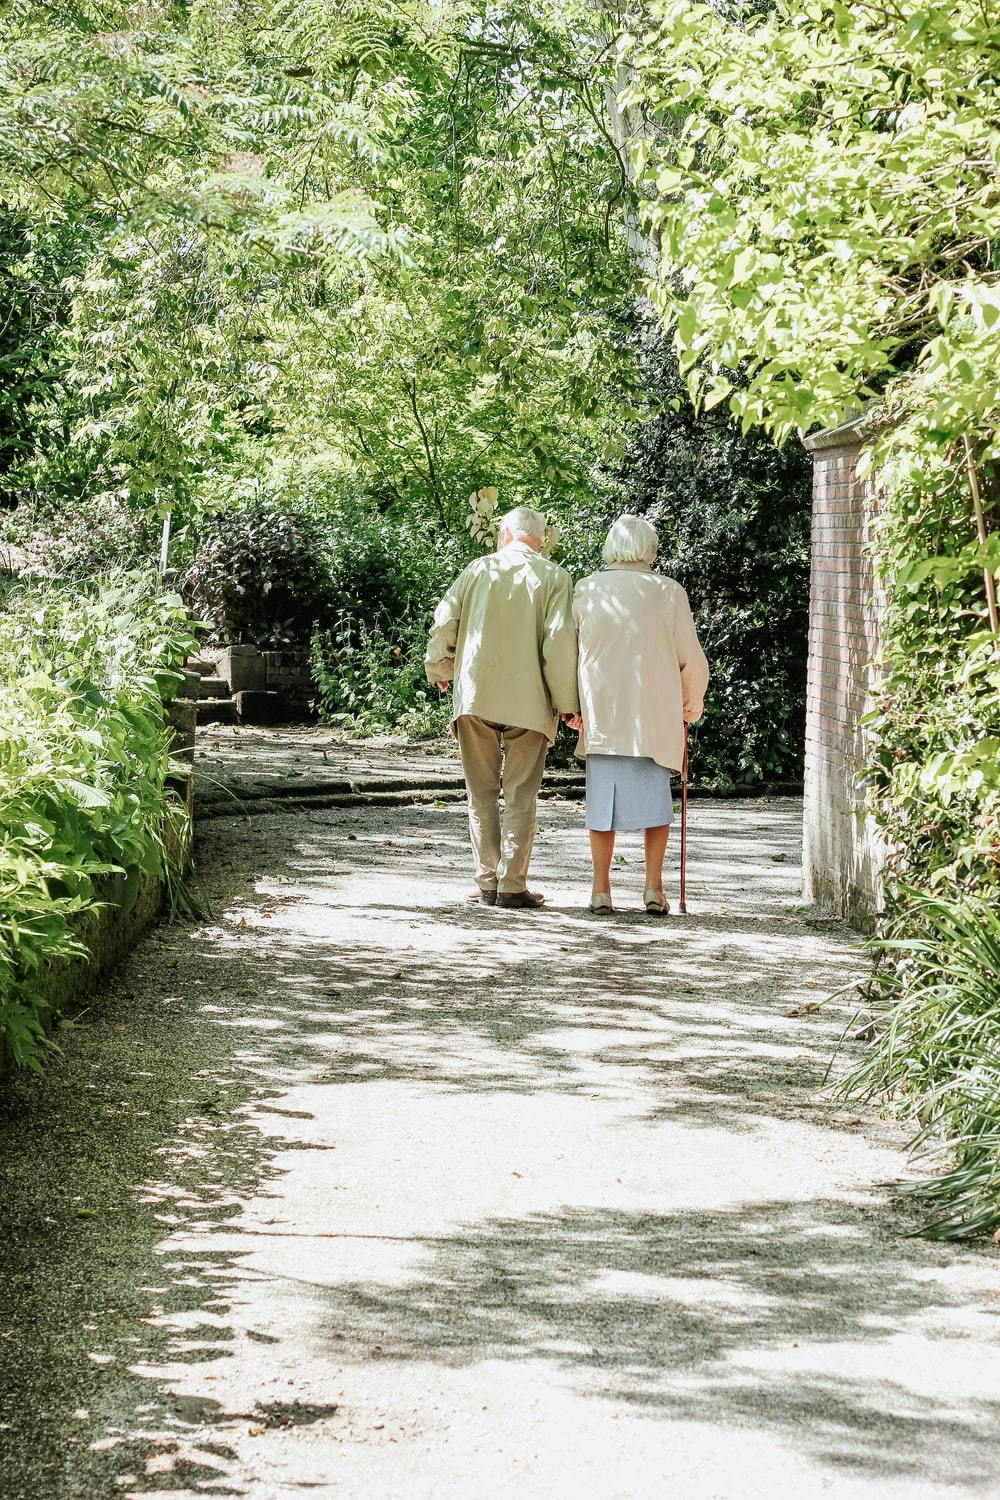 man and woman walking on road during daytime